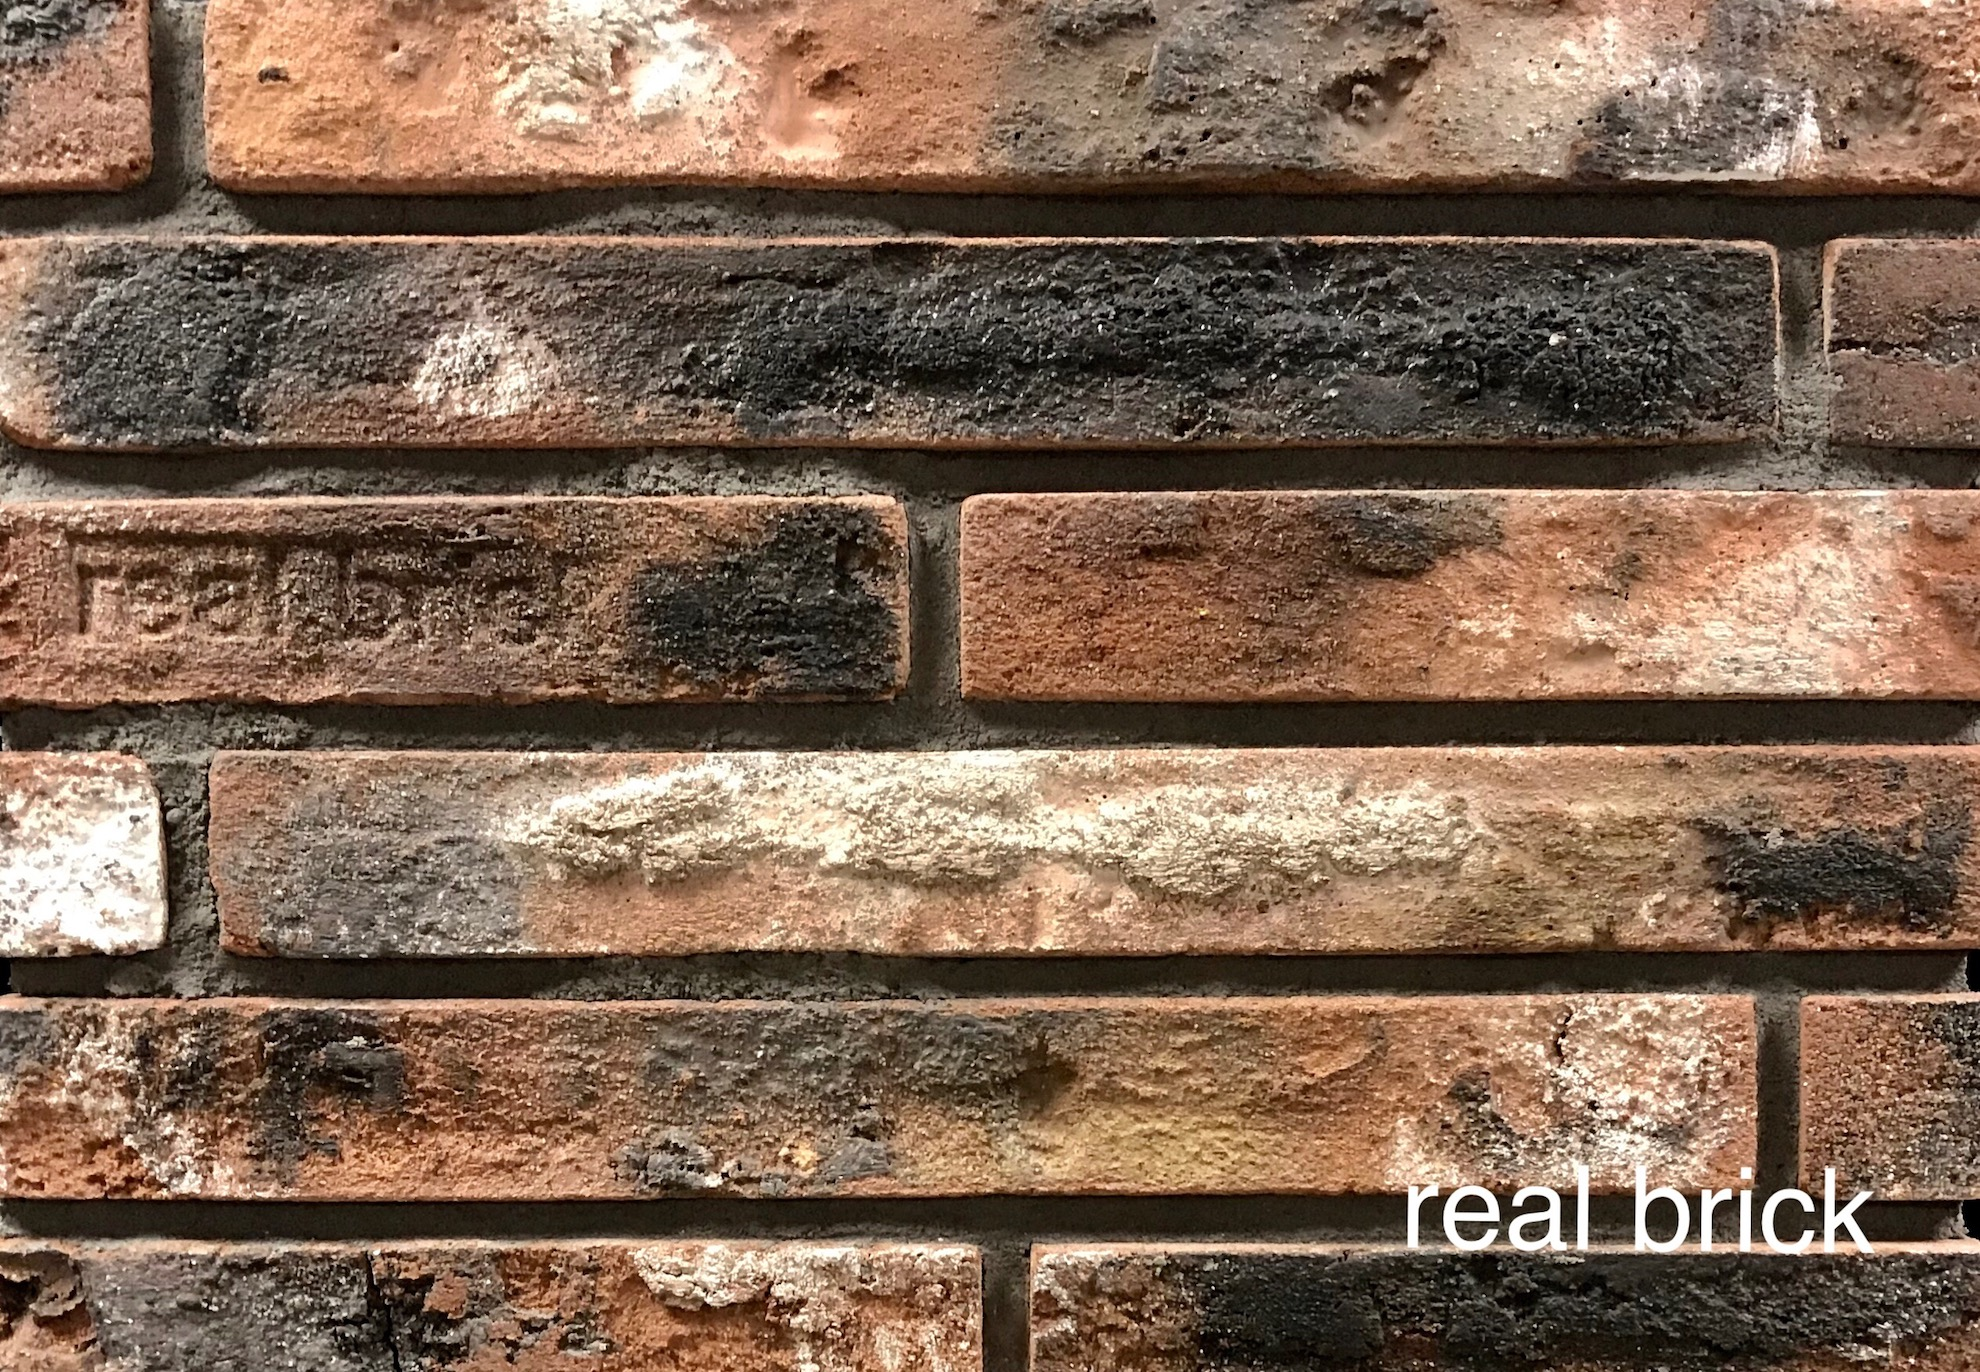 Real brick 7 antiq